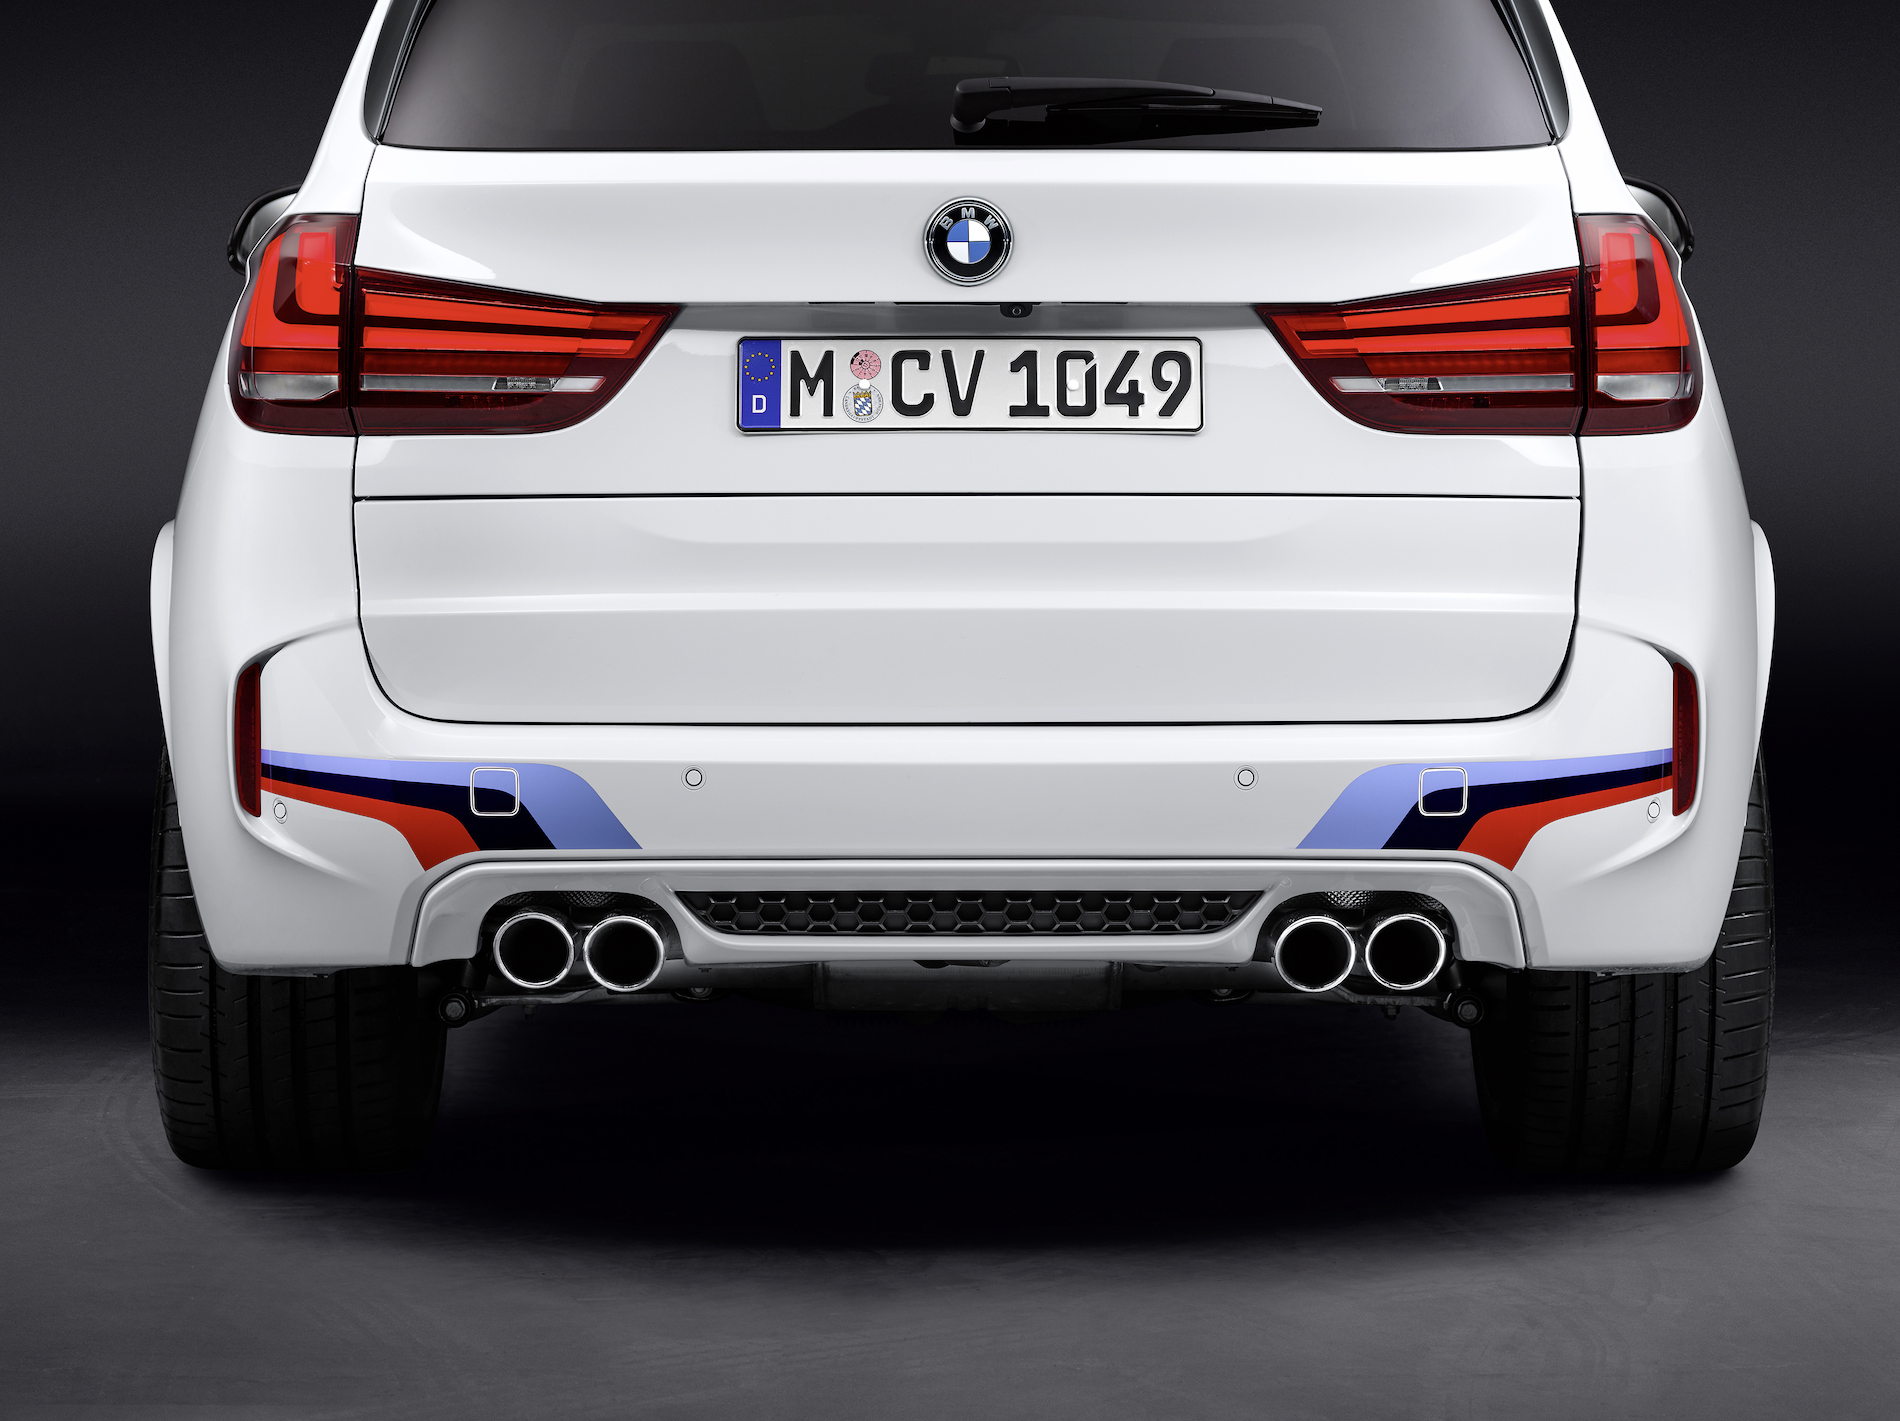 Bmw E90 Performance Bumper >> BMW M Performance Parts for the all new BMW X5 M and X6 M